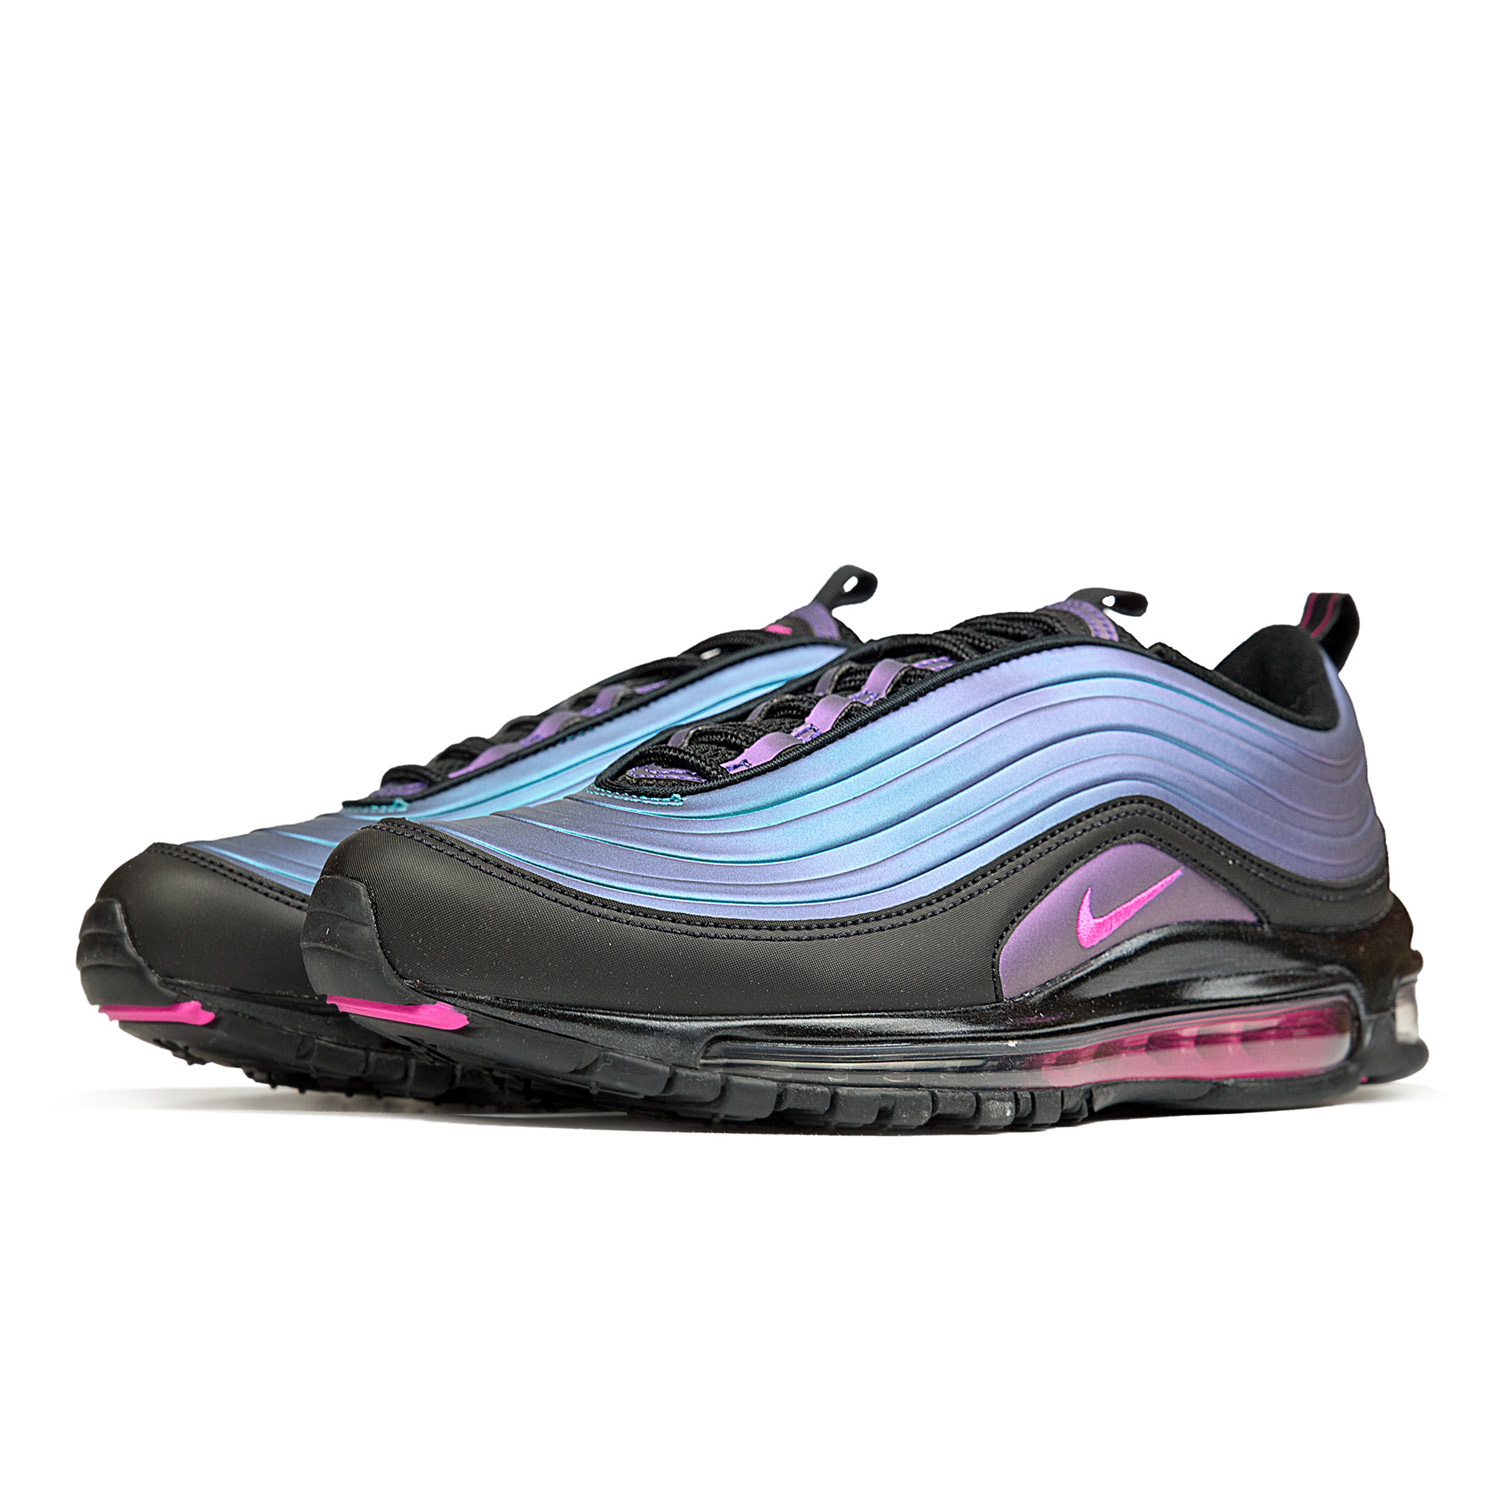 These are air max 97 LX throw back future